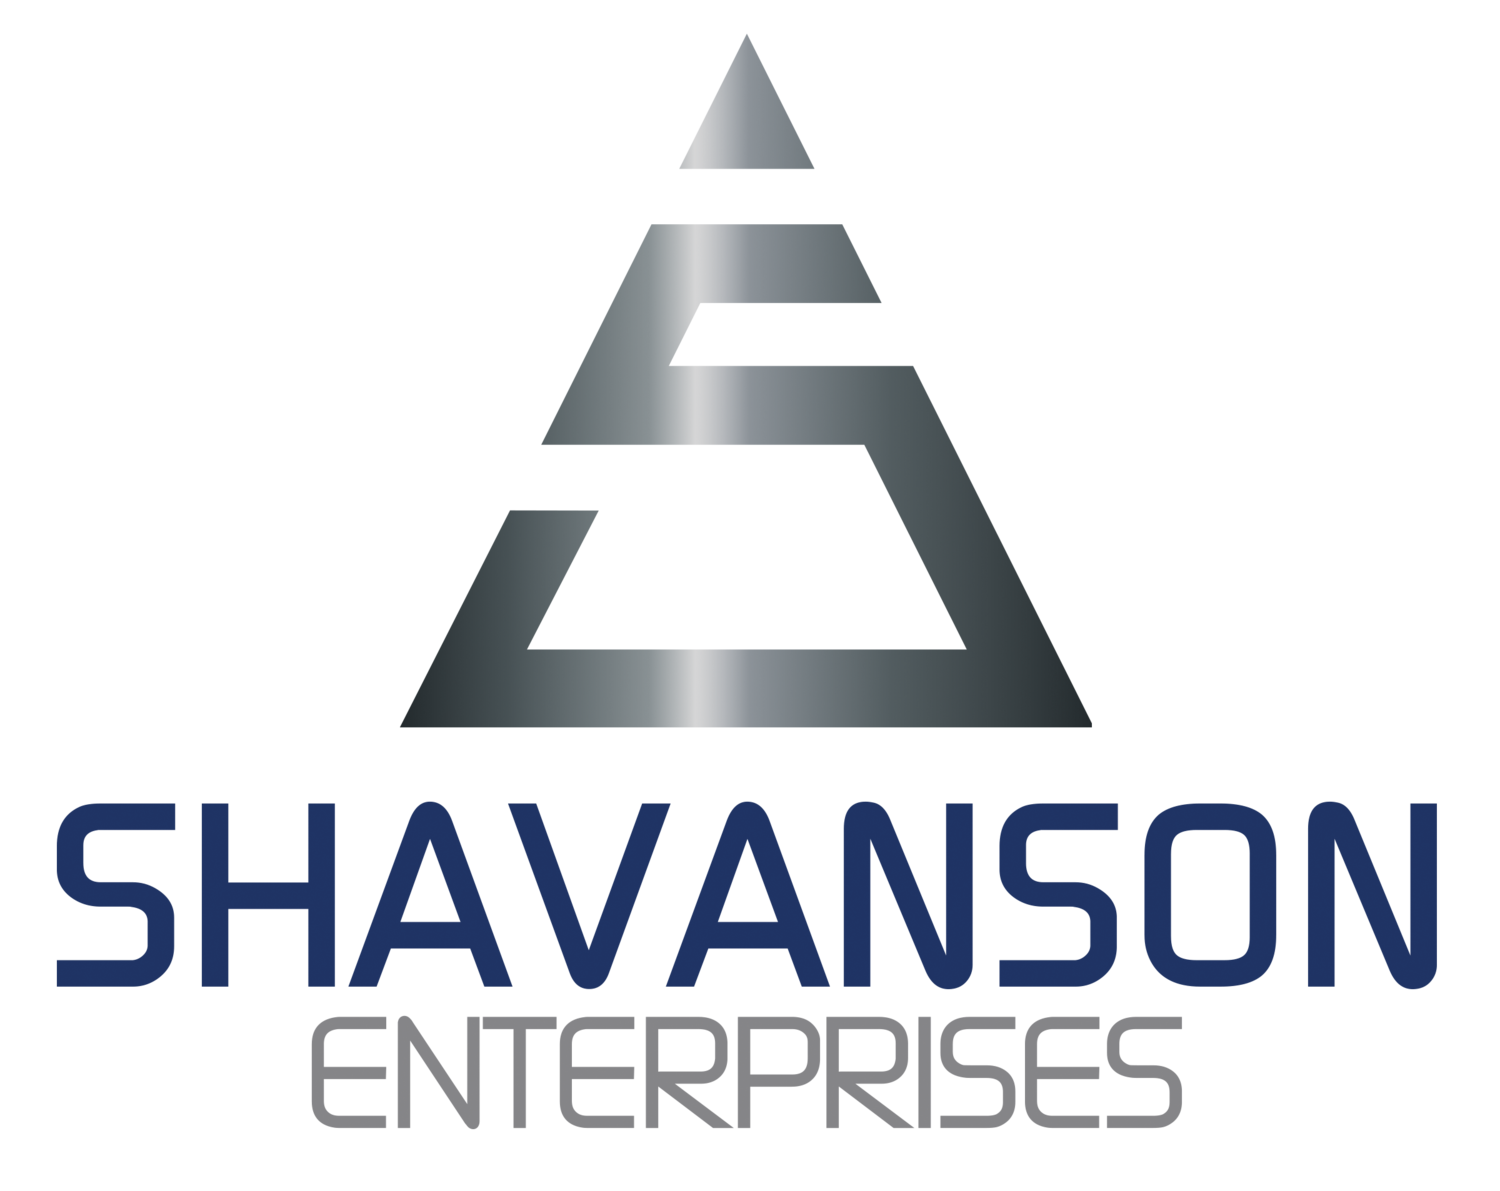 Shavanson Enterprises